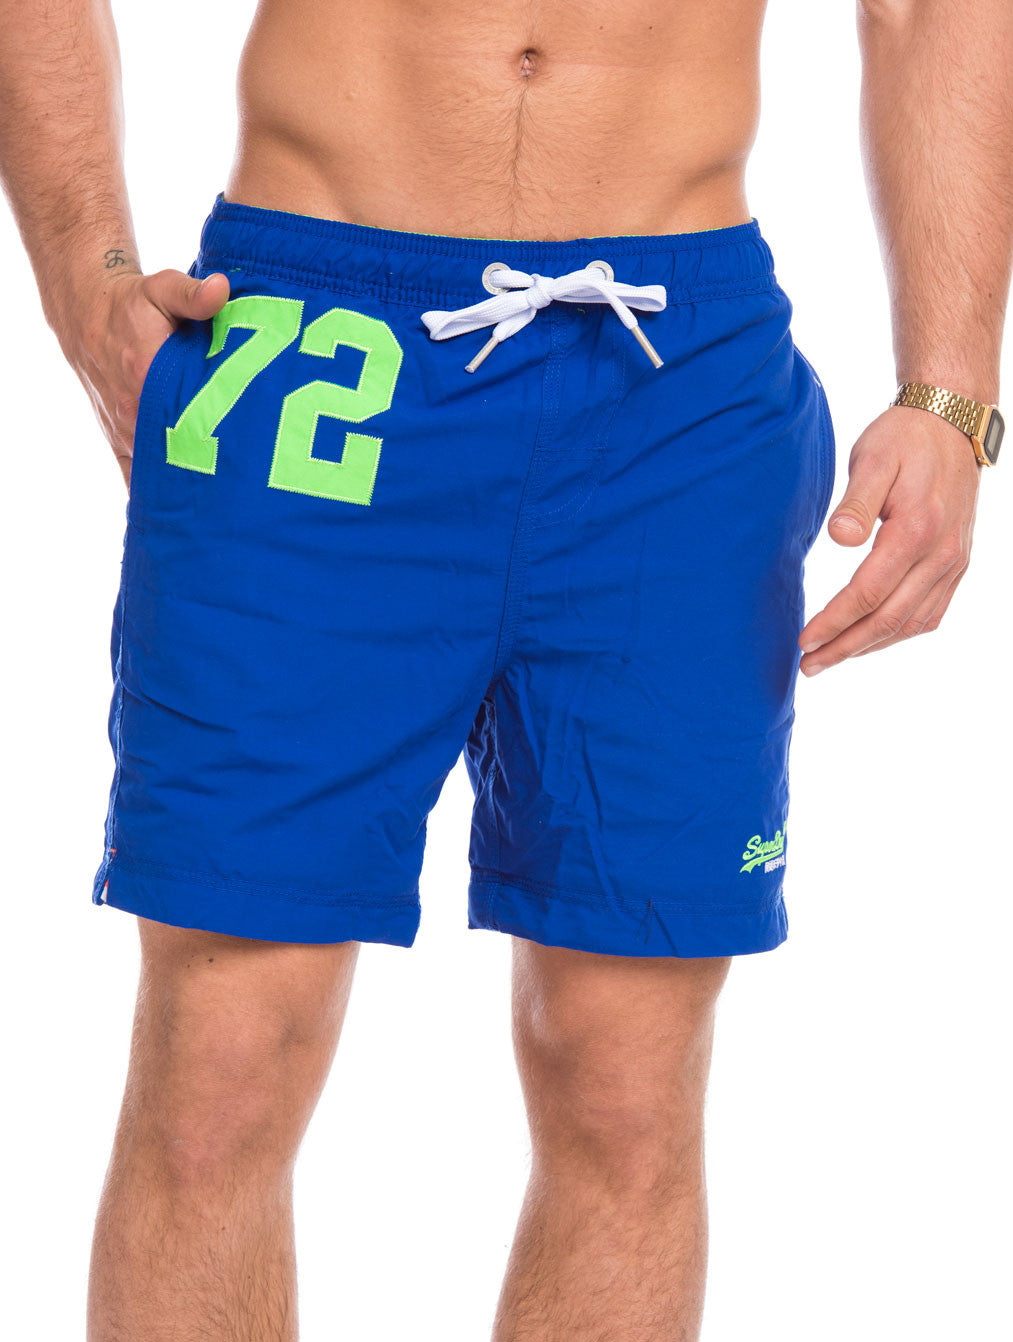 MEN'S CLOTHING | SWIMWEAR | BEACHWEAR | PREMIUM WATER POLO | BLUE | REGULAR FIT | MID-LENGTH | SWIM SHORTS | #SUMMERVIBES | SUPERDRY | NOHOW